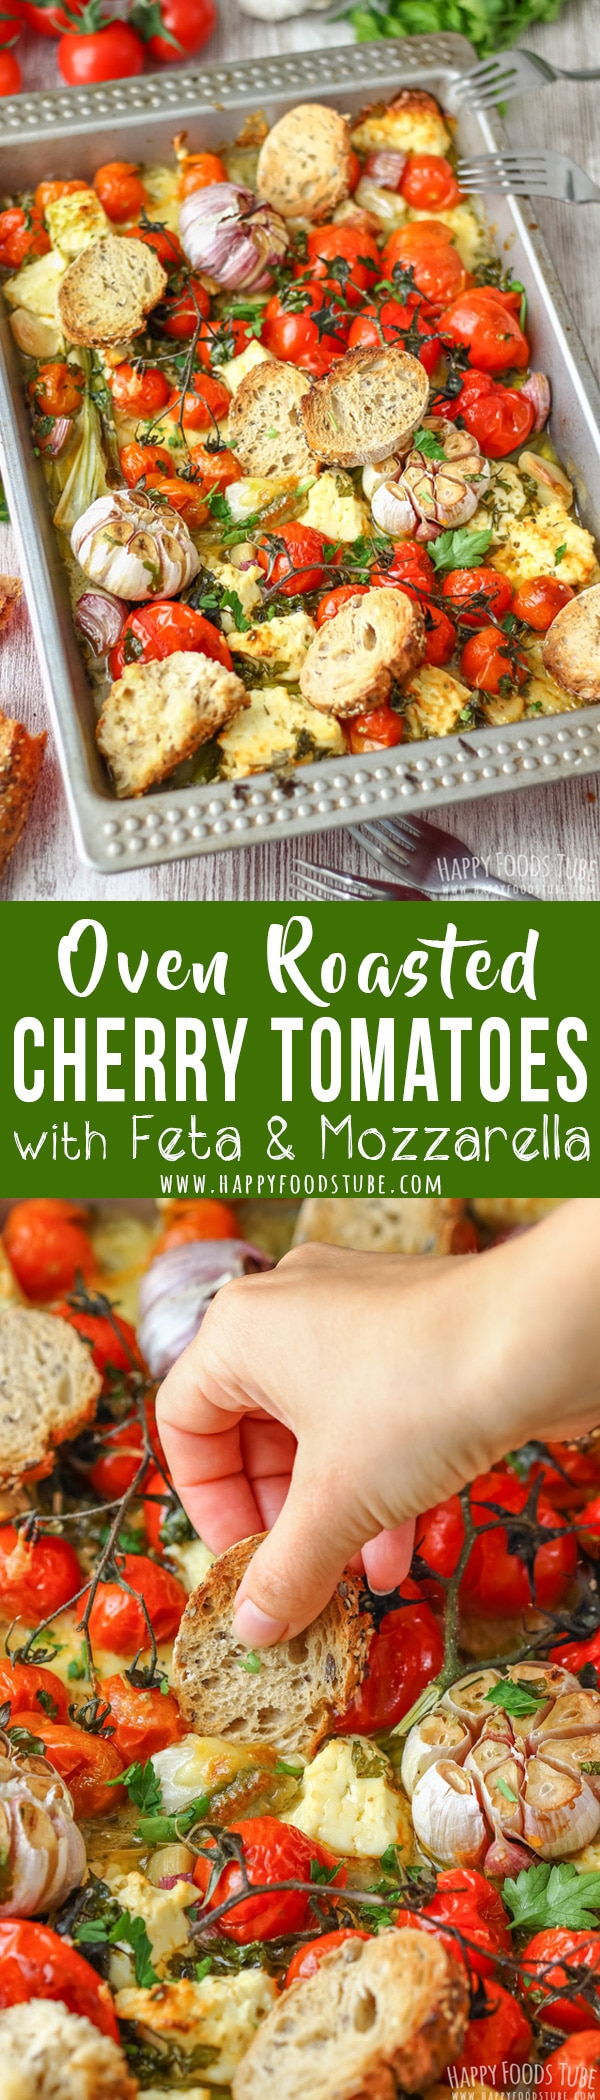 Oven Roasted Cherry Tomatoes with Feta and Mozzarella is a flavorful side dish perfect for spring or summer. #roasted #tomatoes #feta #mozzarella #sidedish #recipe #food #vegetarian #meal #cooking